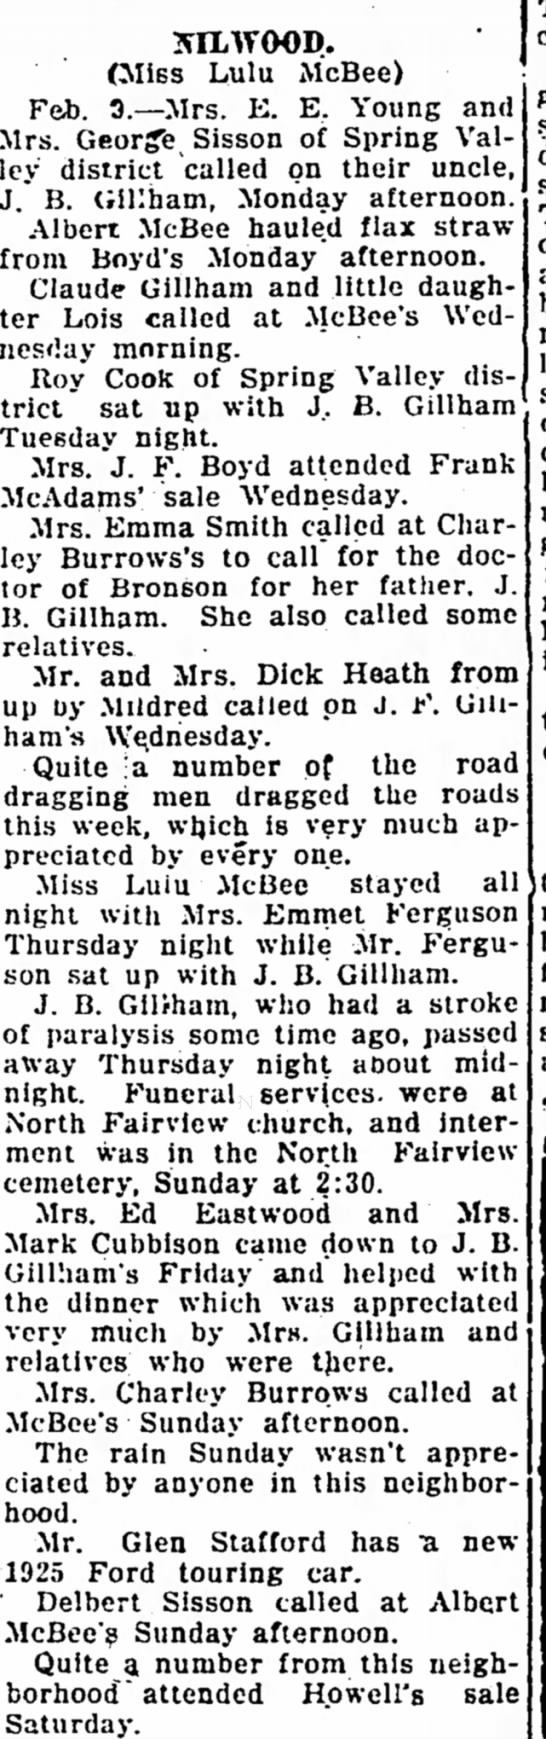 References to John B. Gillham death - Iola Register 10 Feb 1925 Page 3 Col 2